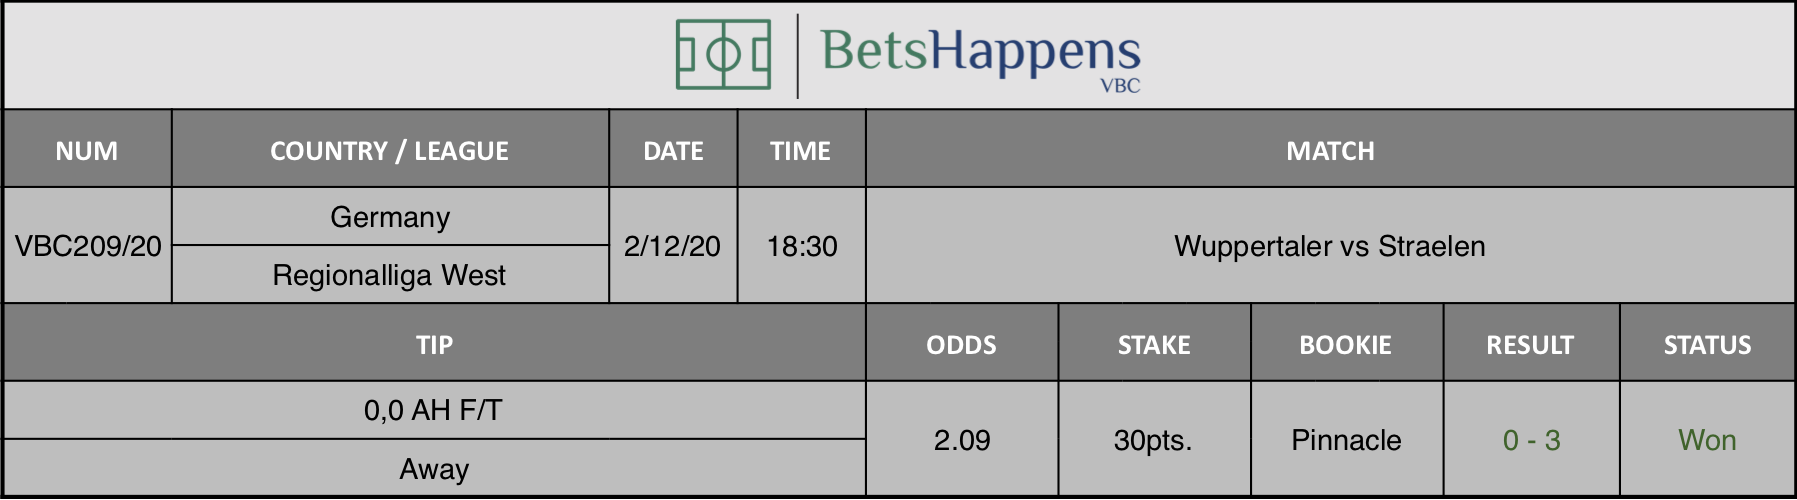 Results of our tip for the Wuppertaler vs Straelen match where 0,0 AH F/T  Away is recommended.